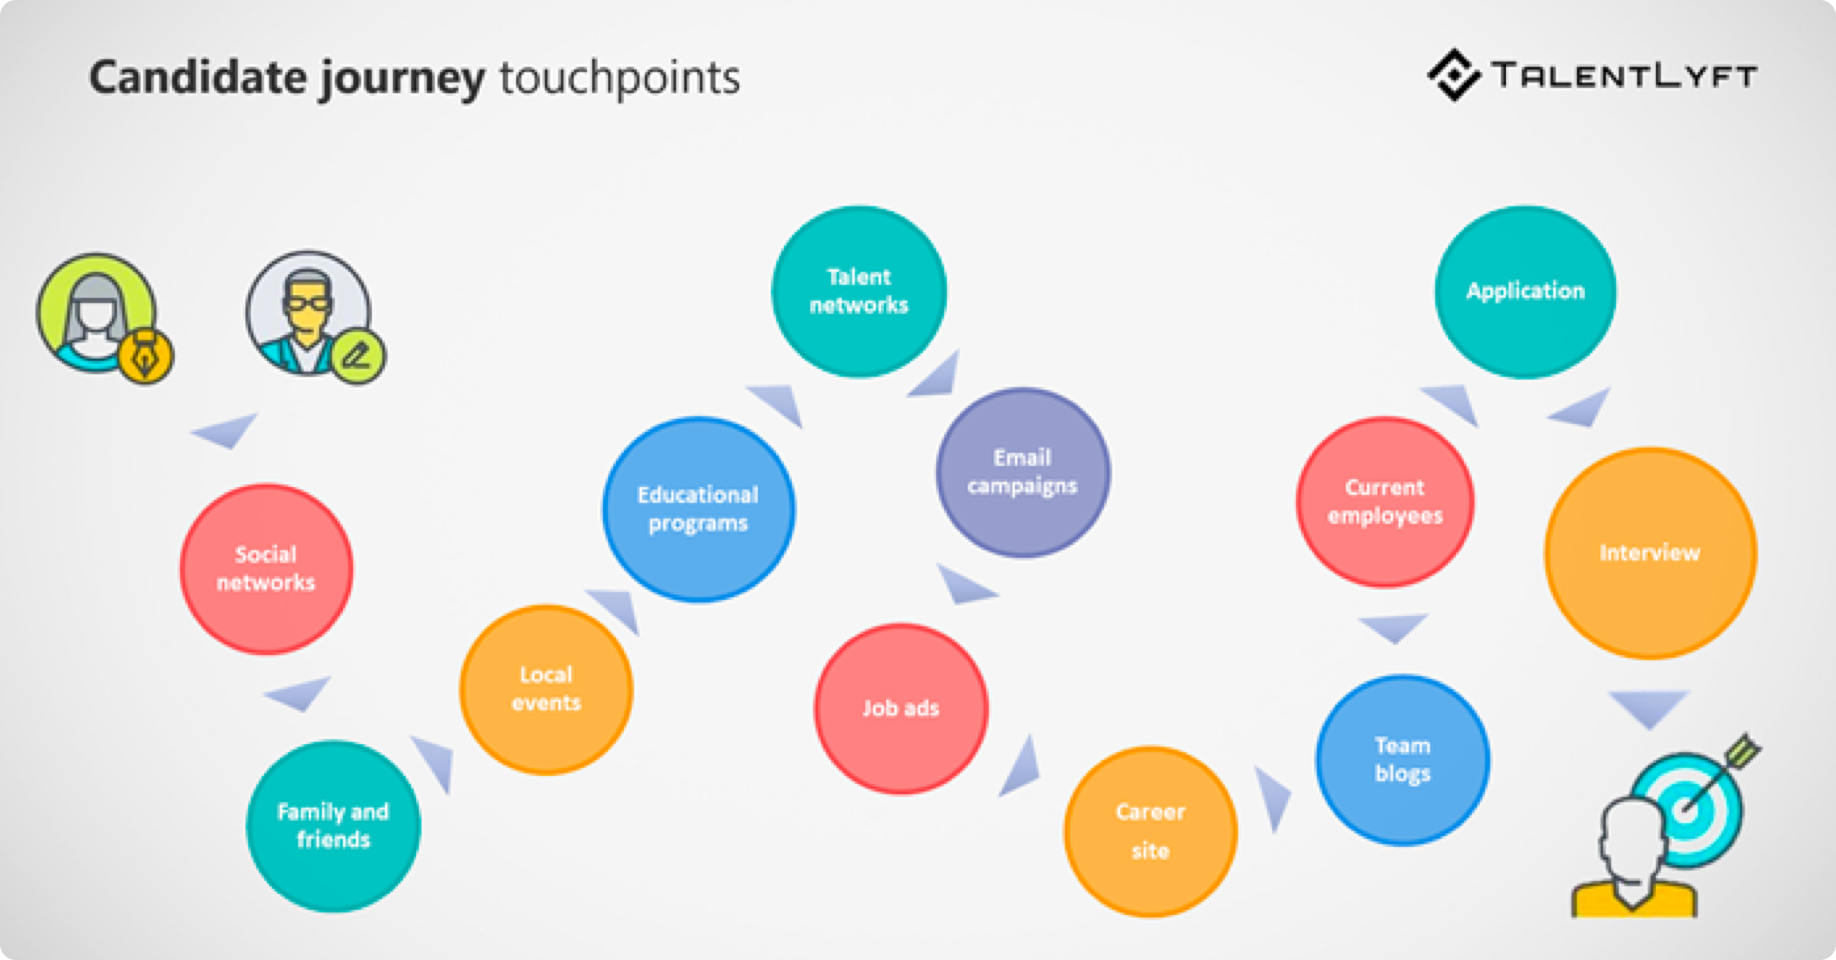 Candidate Journey Touchpoints